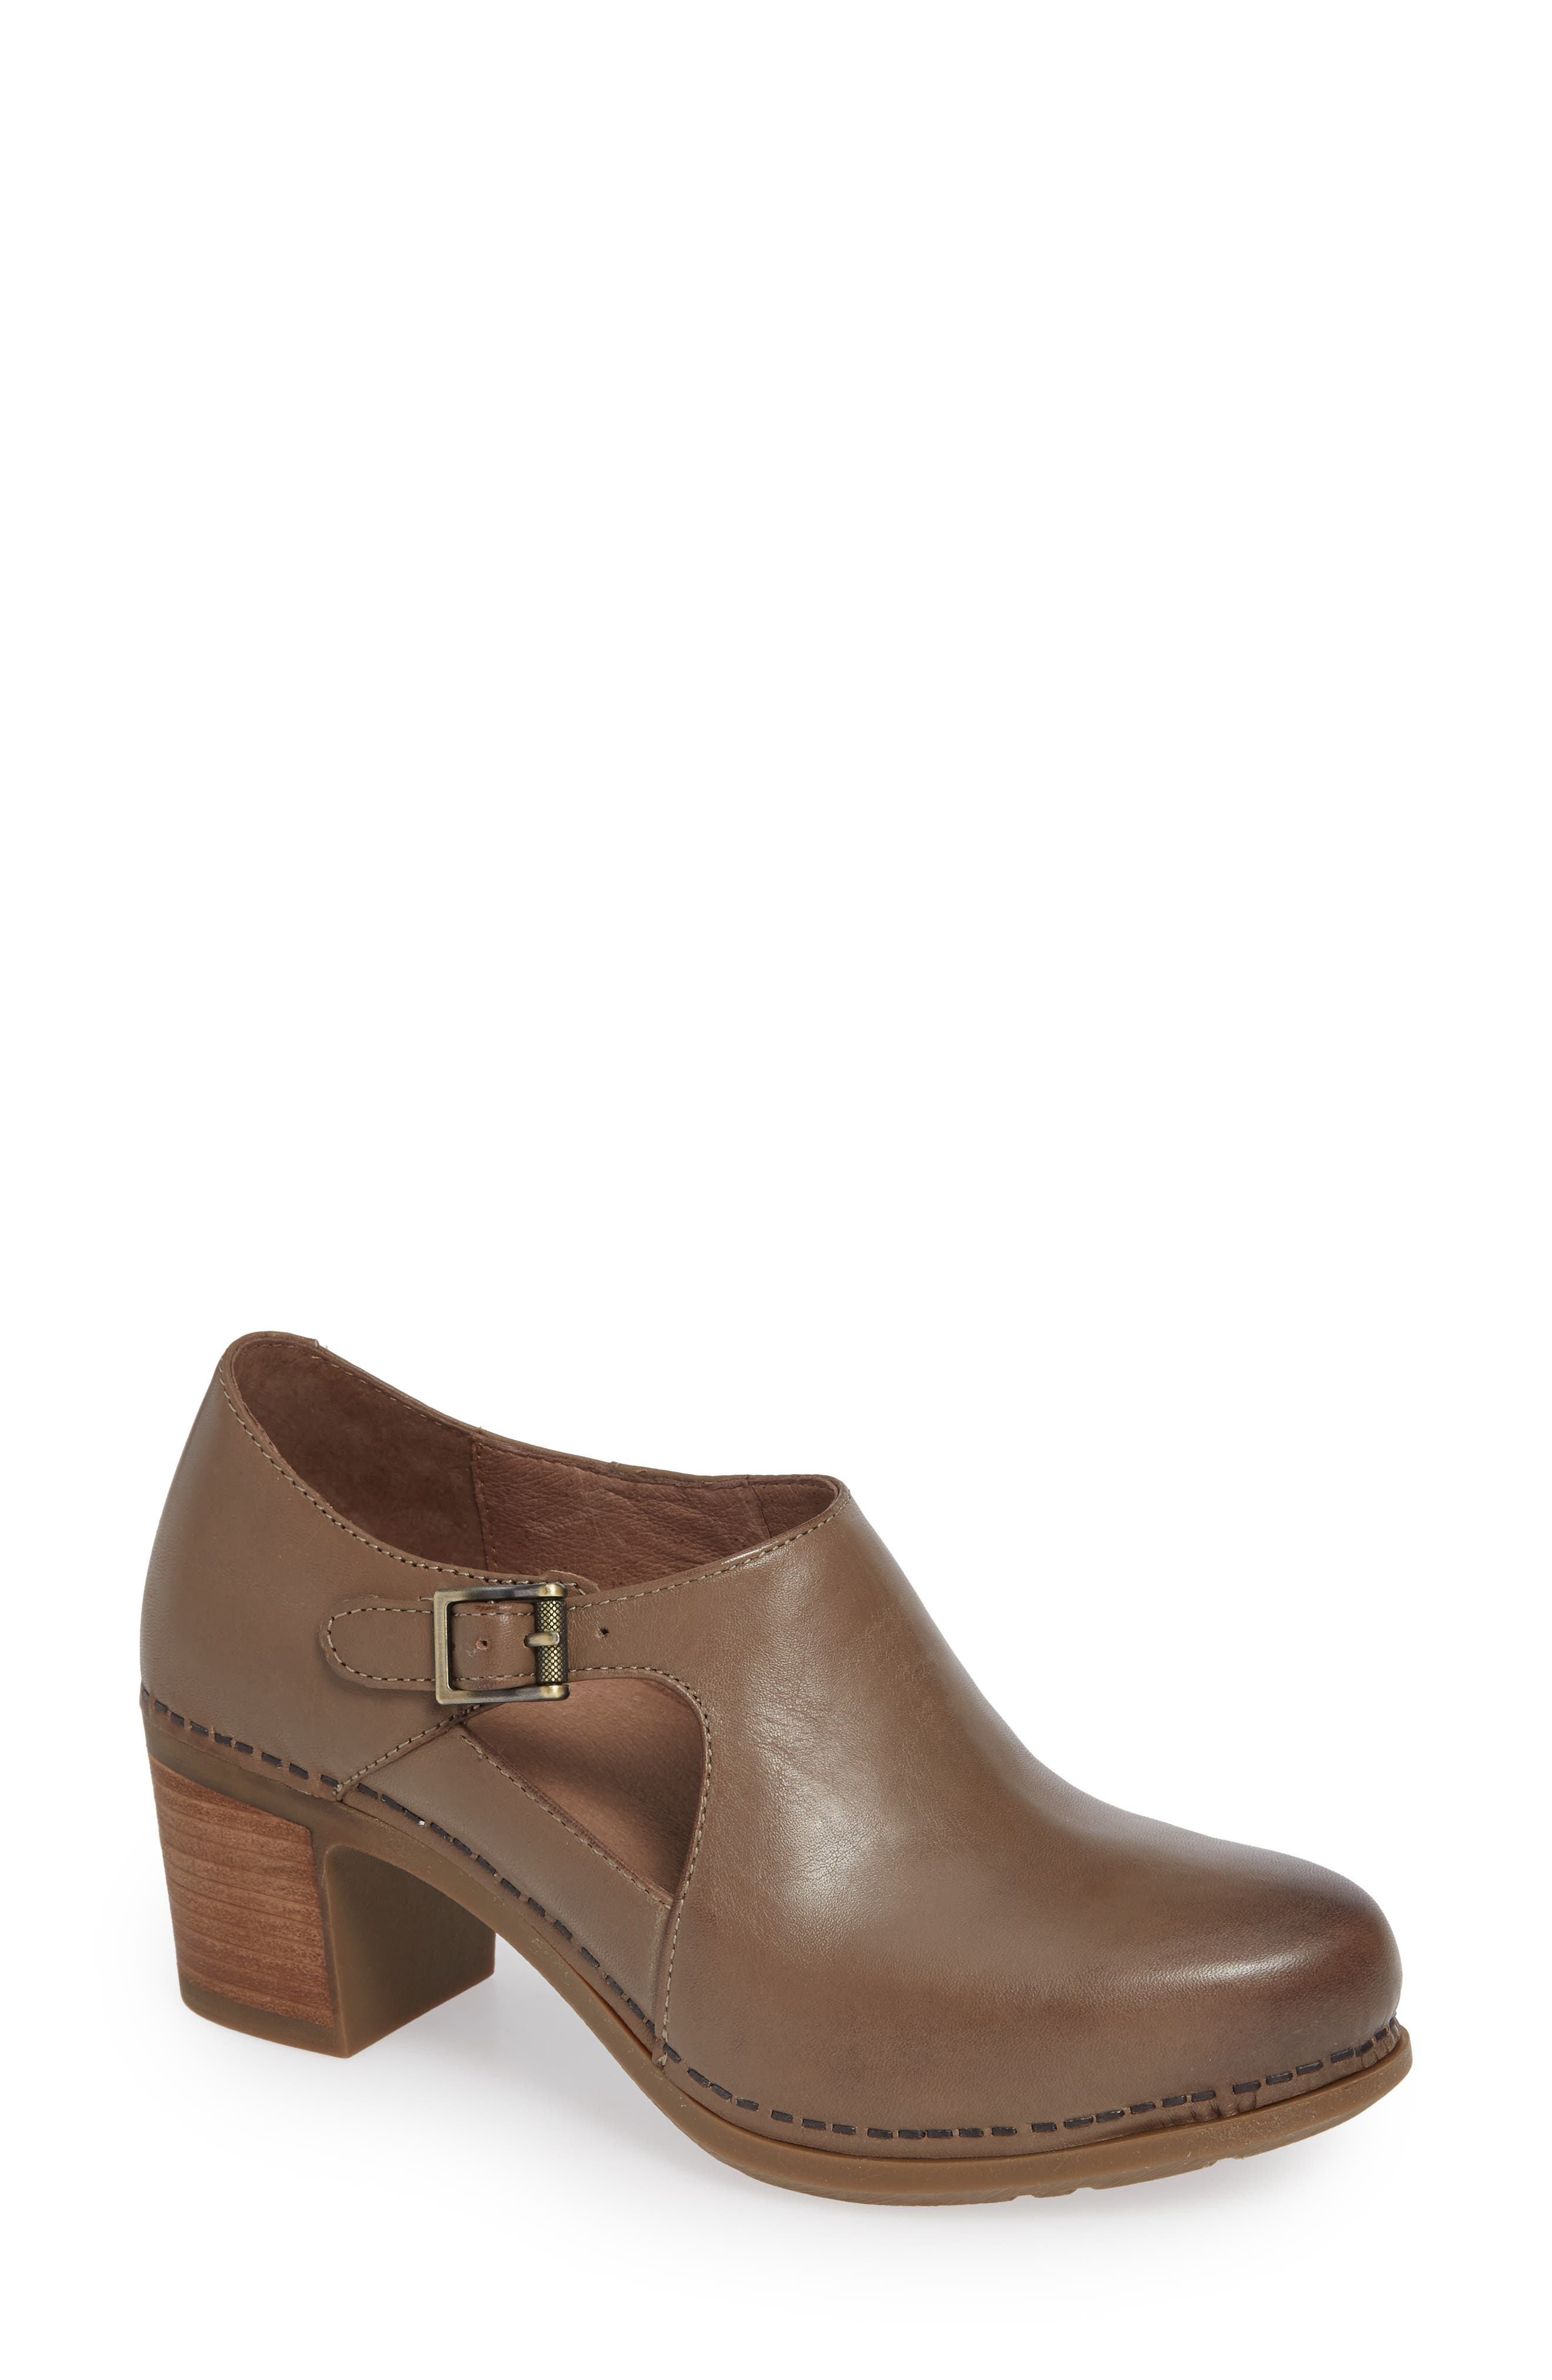 Hollie Bootie in Taupe Burnished Leather